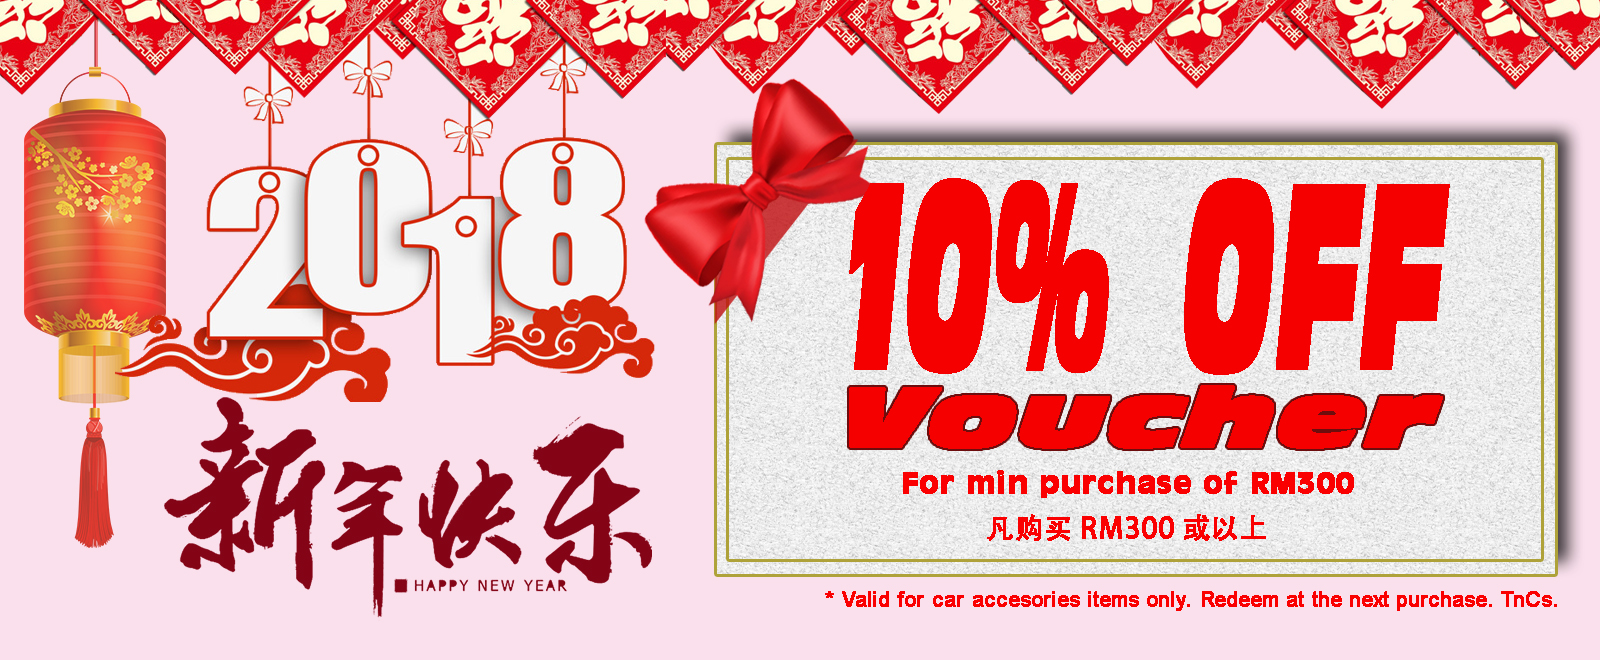 CNY 2018 Sungai Wang Car Accessories